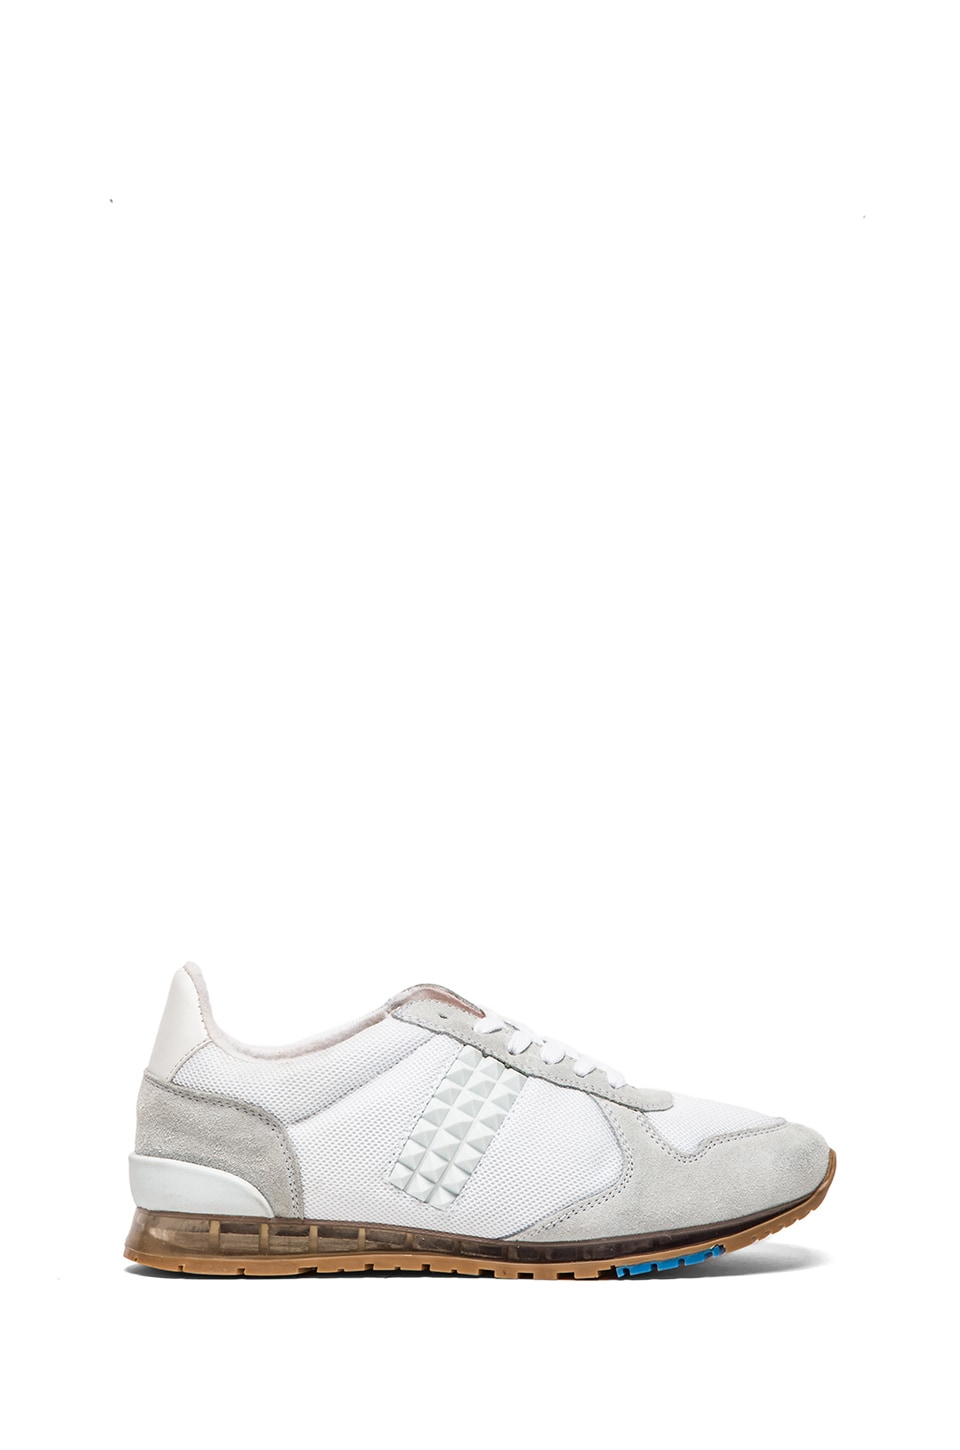 Caminando Studs Trainer in White